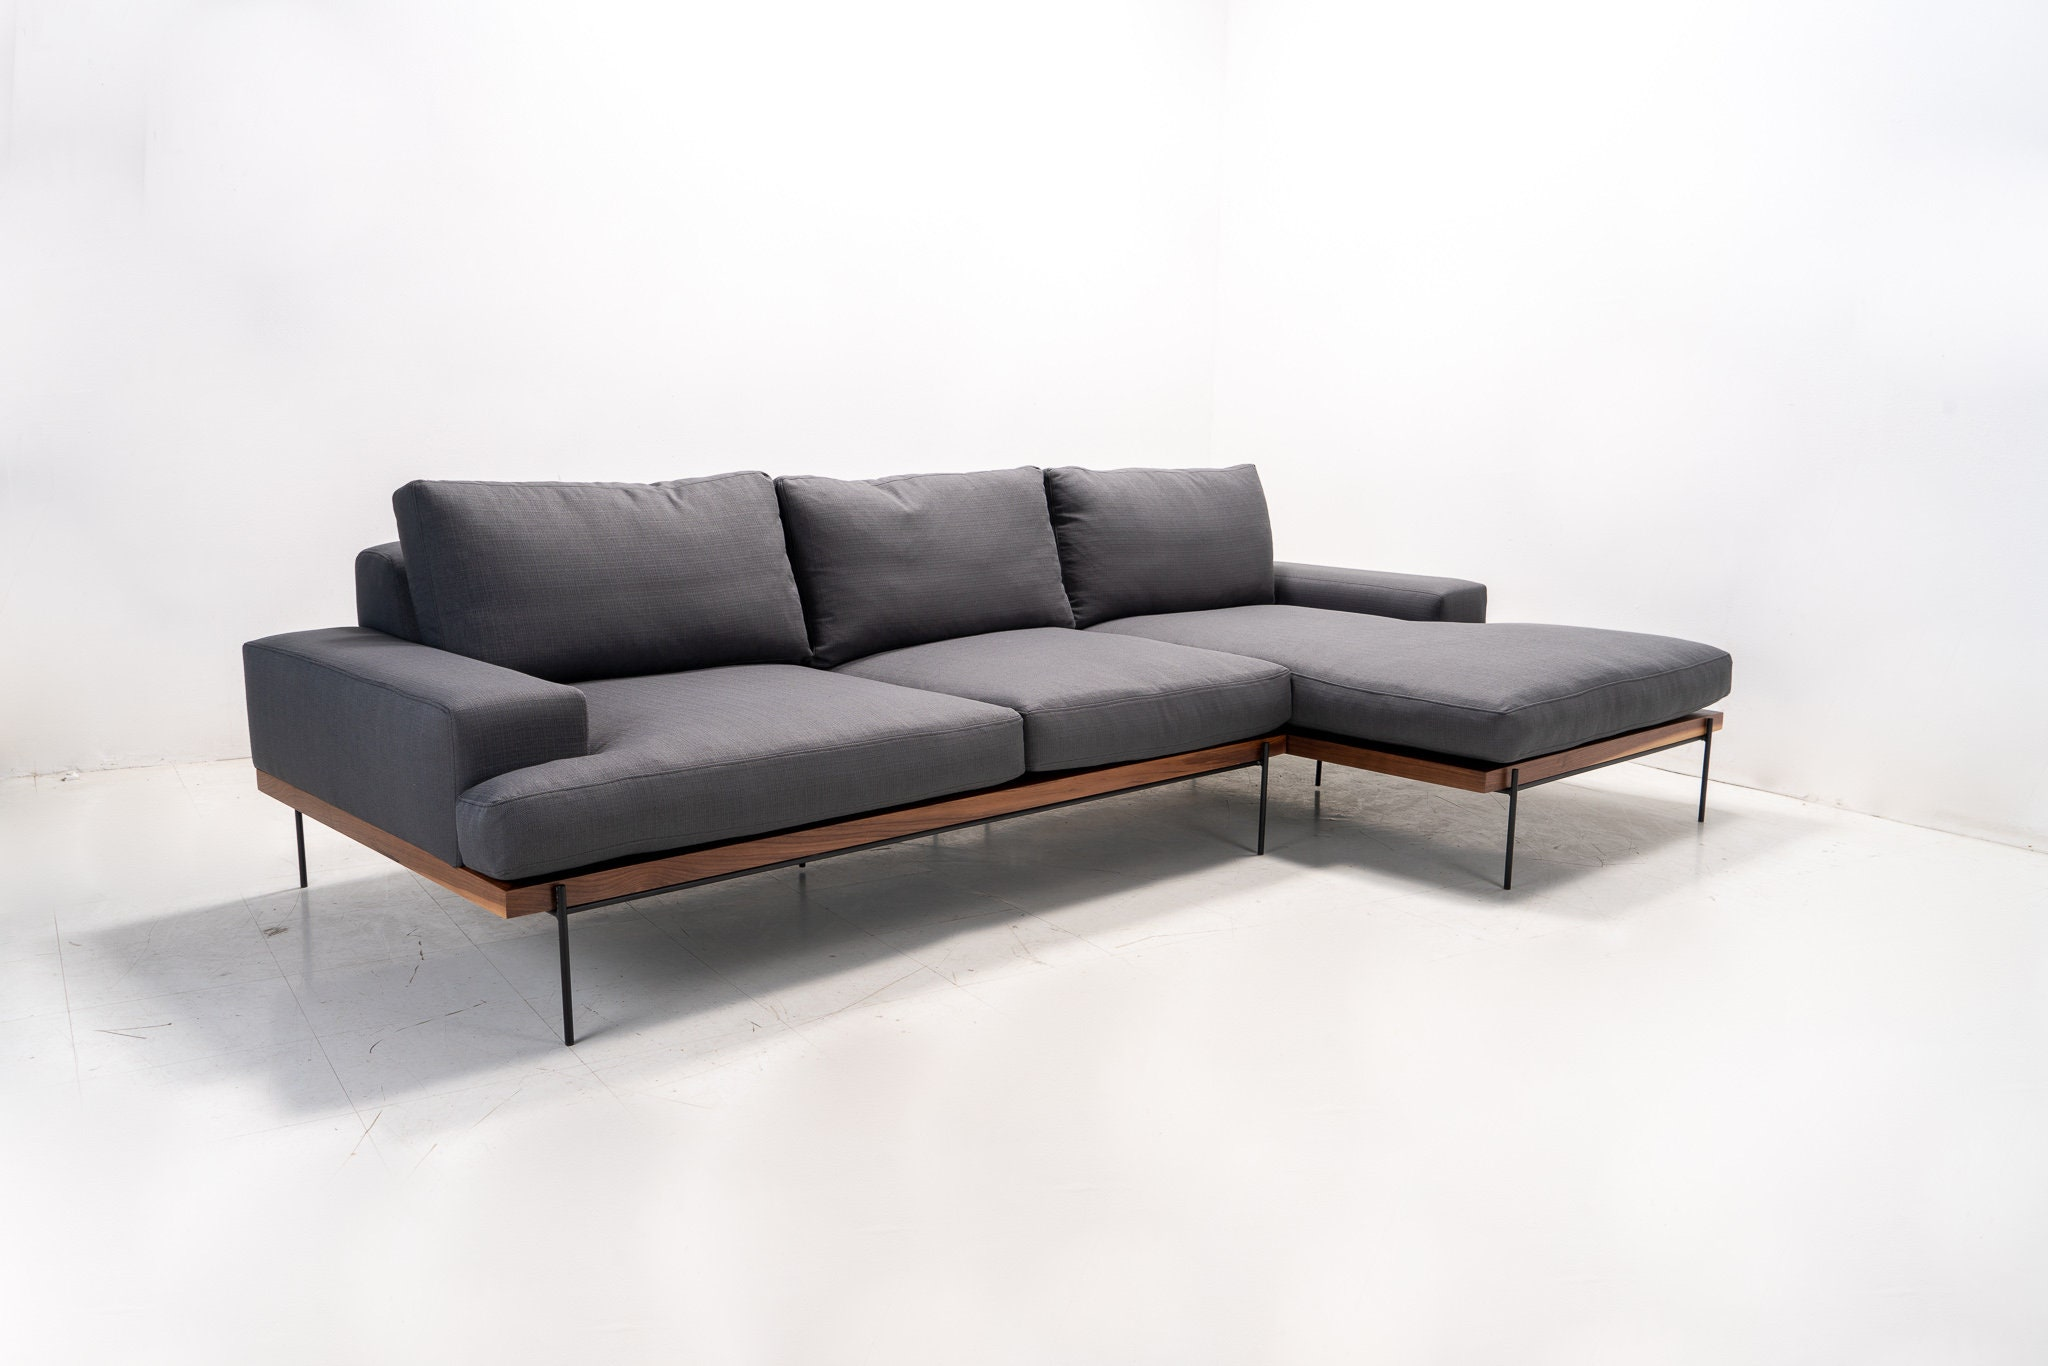 Modern Industrial feather filled Sofa chaise with Rod Iron base